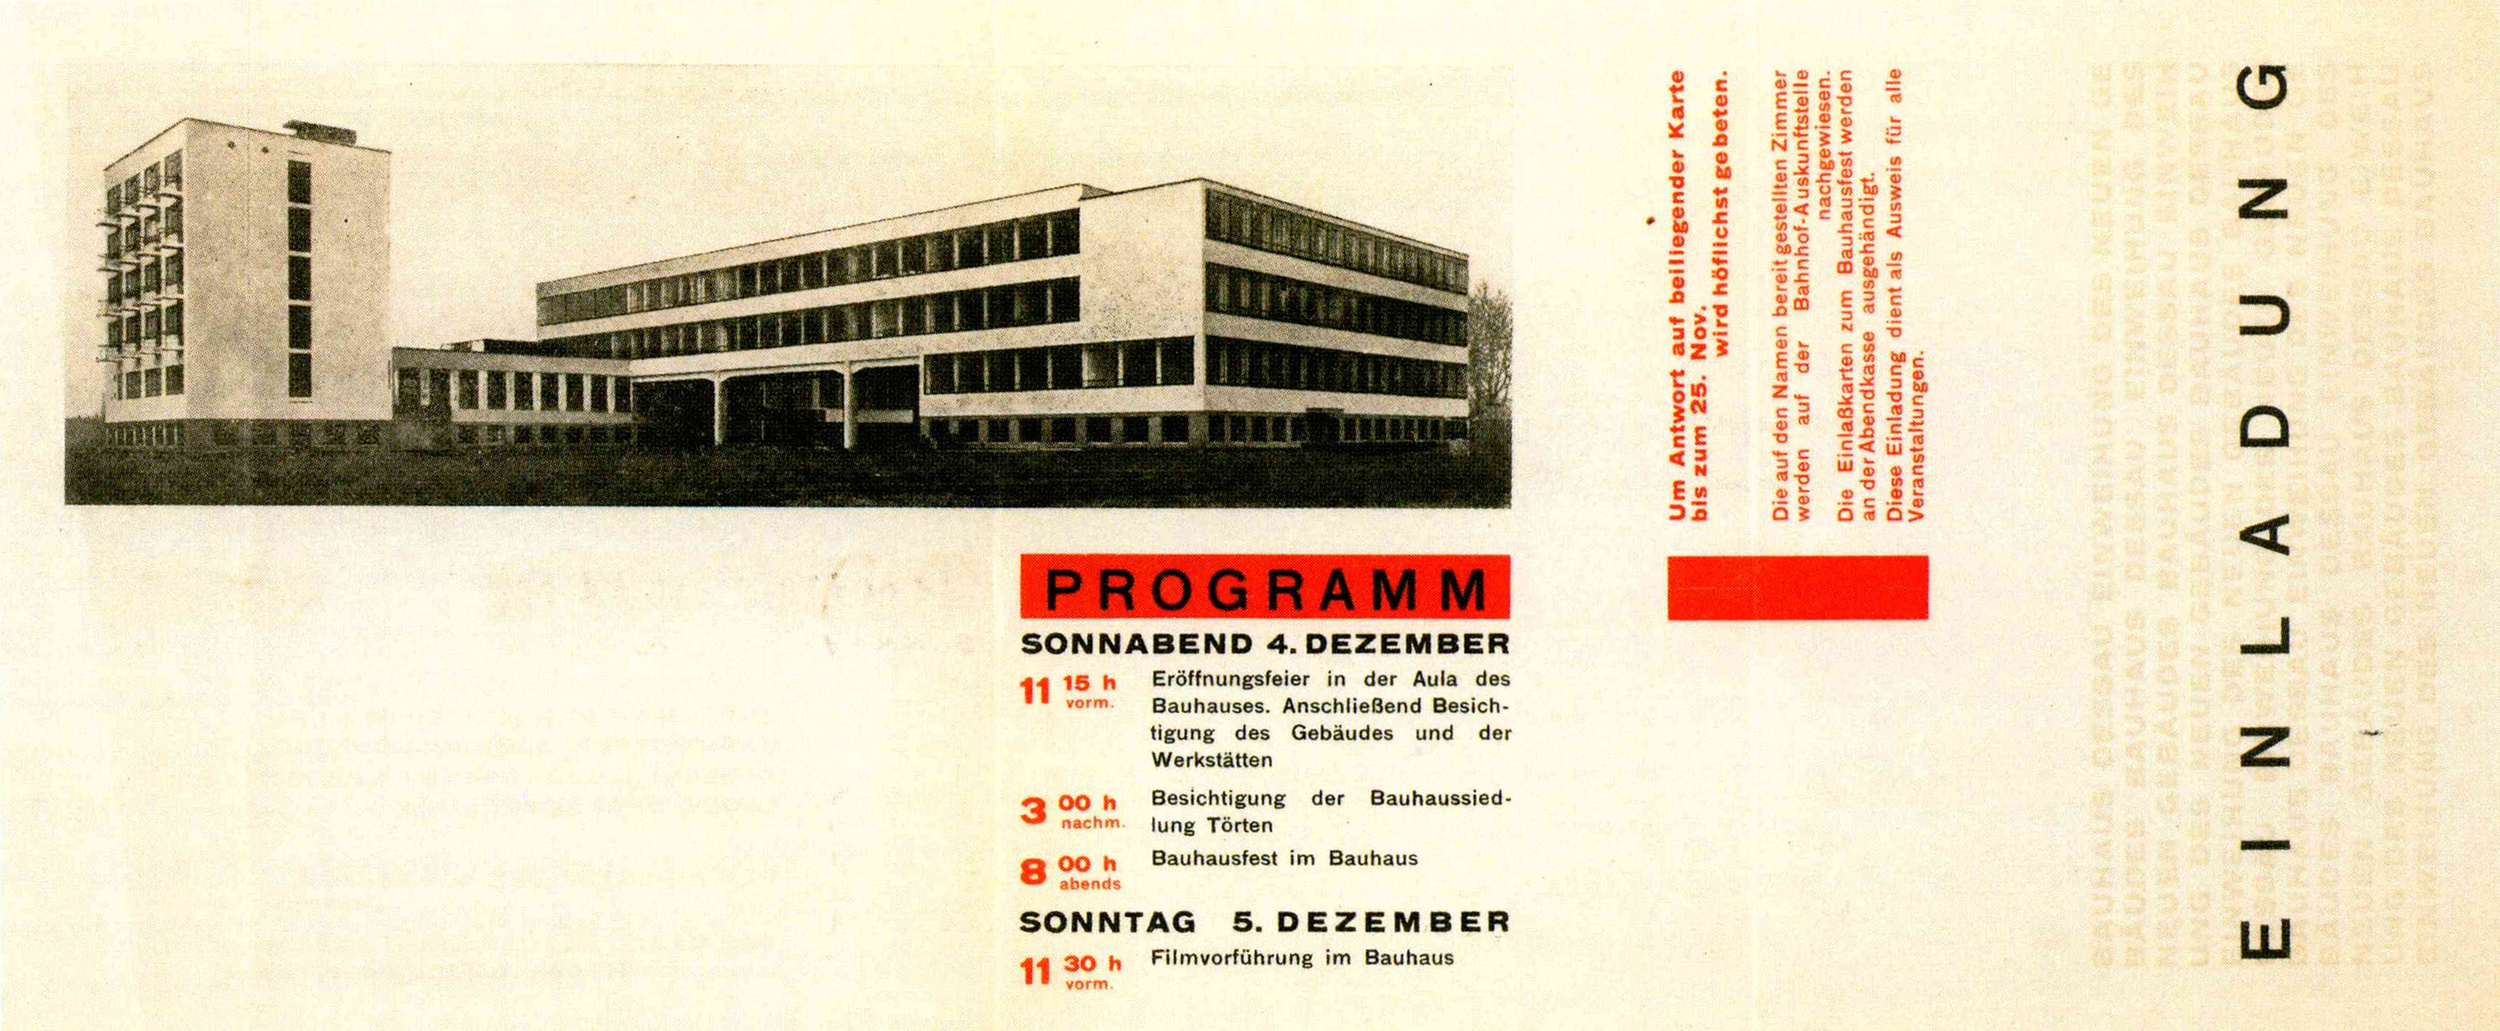 herbert-bayer-invitation-to-the-inauguration-of-the-bauhaus-building-designed-by-walter-gropius-for-december-4-5-1926-letterpress-on-paper-14-4x34-9cm3.jpeg